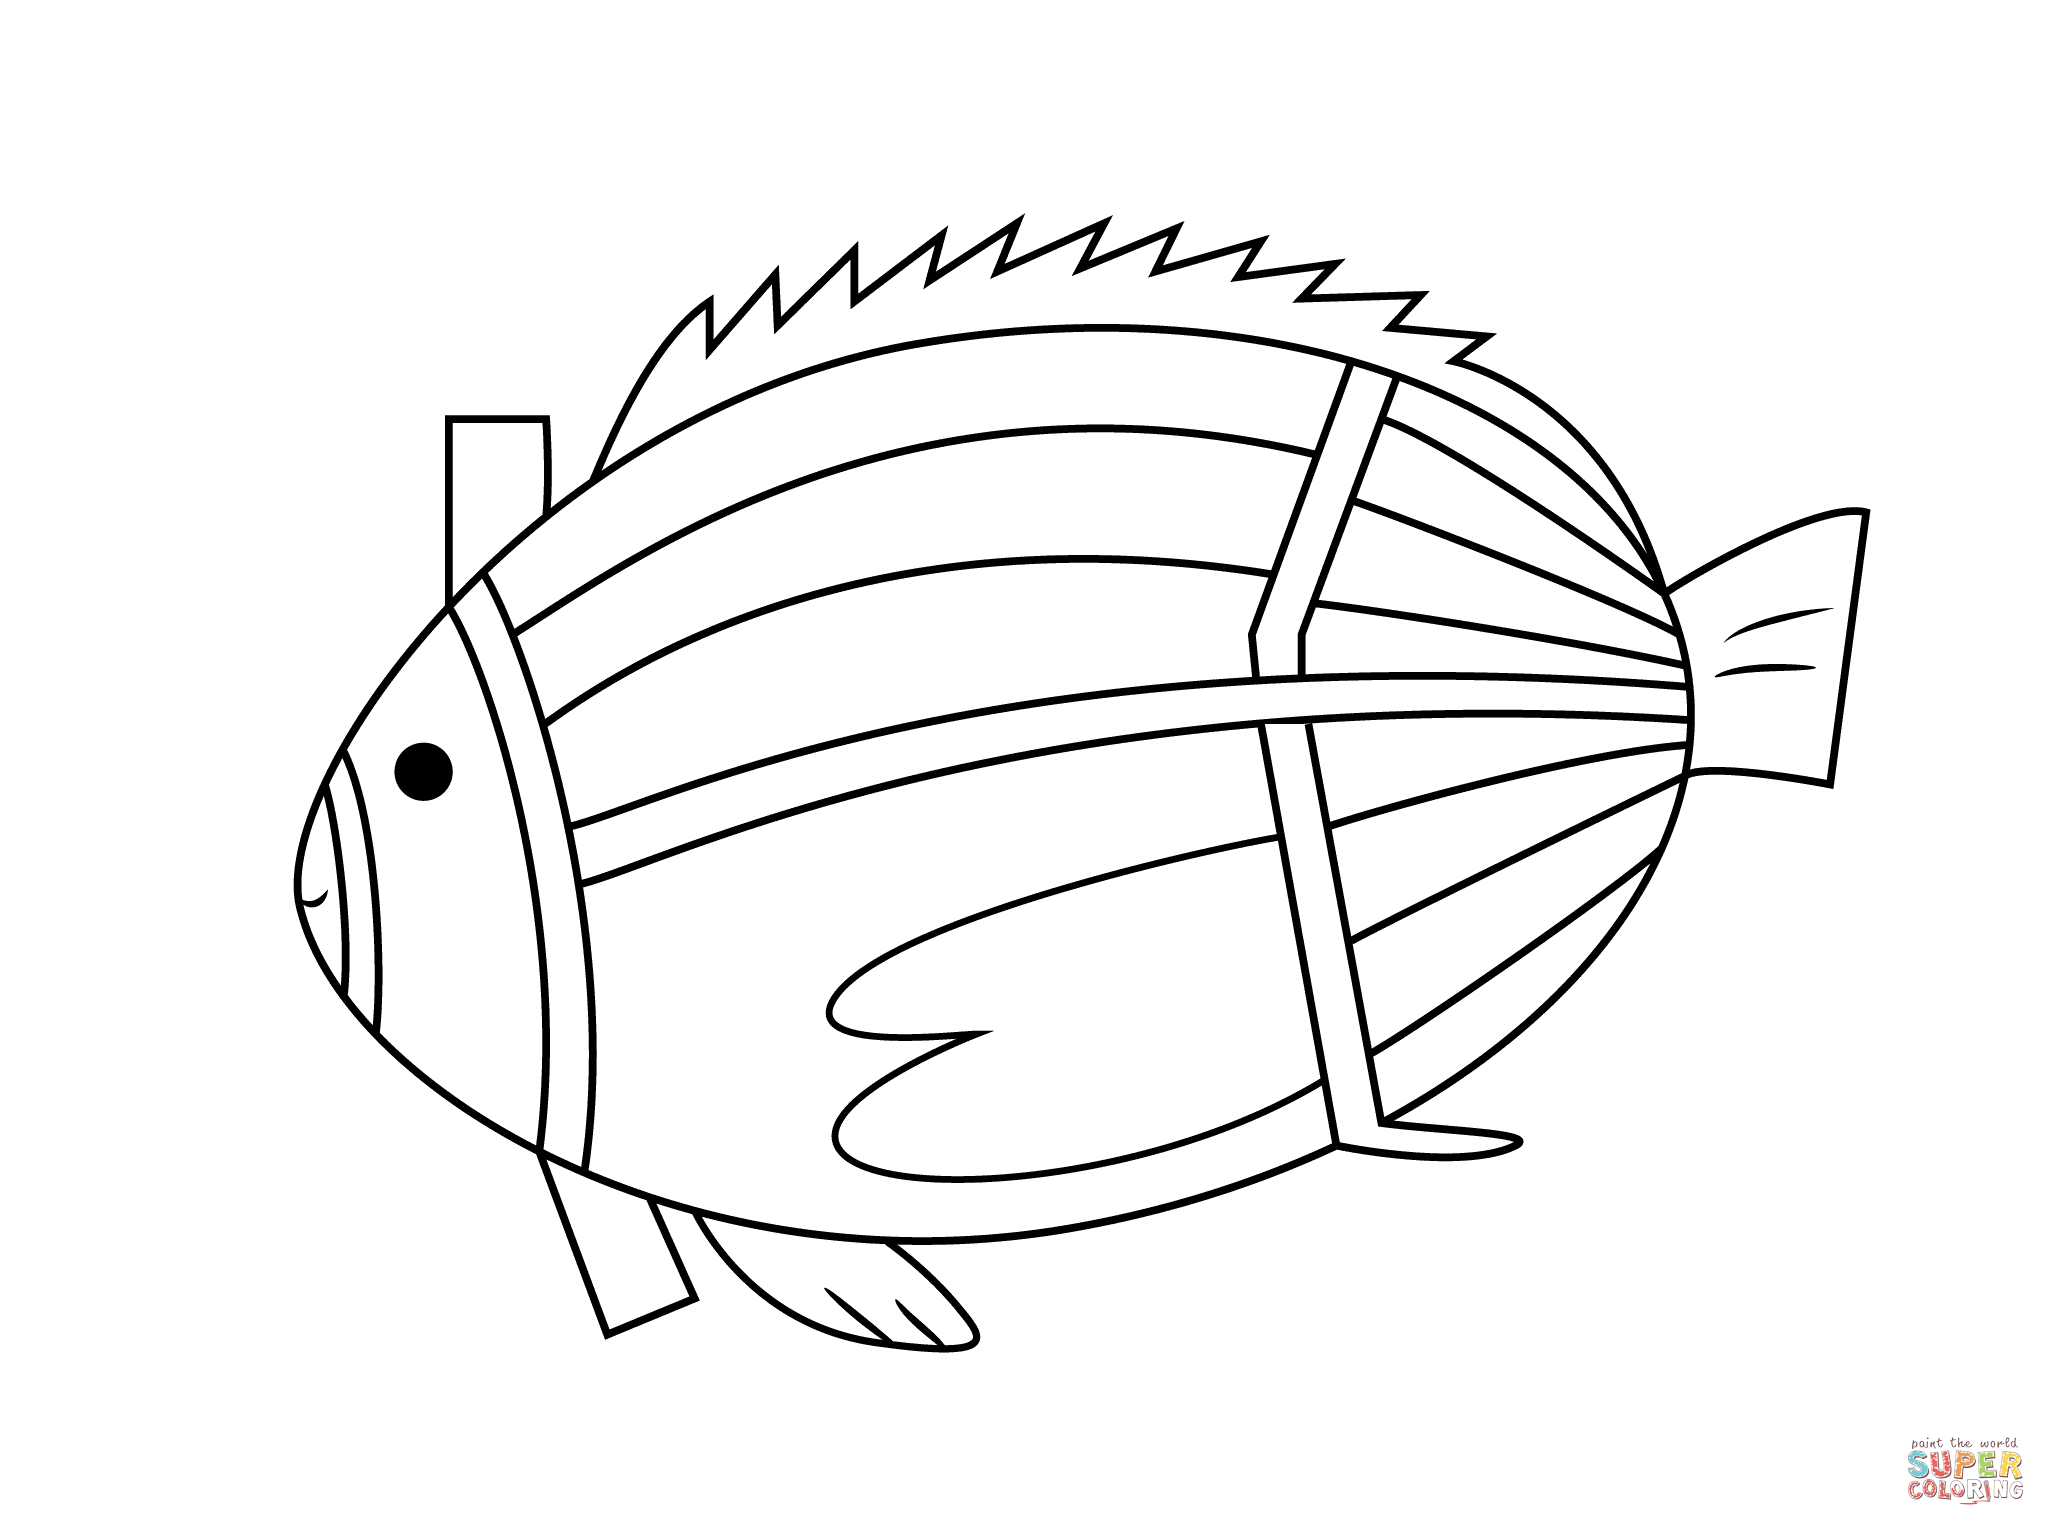 Aboriginal Art Coloring Pages   Free Coloring Pages - Free Printable Aboriginal Colouring Pages